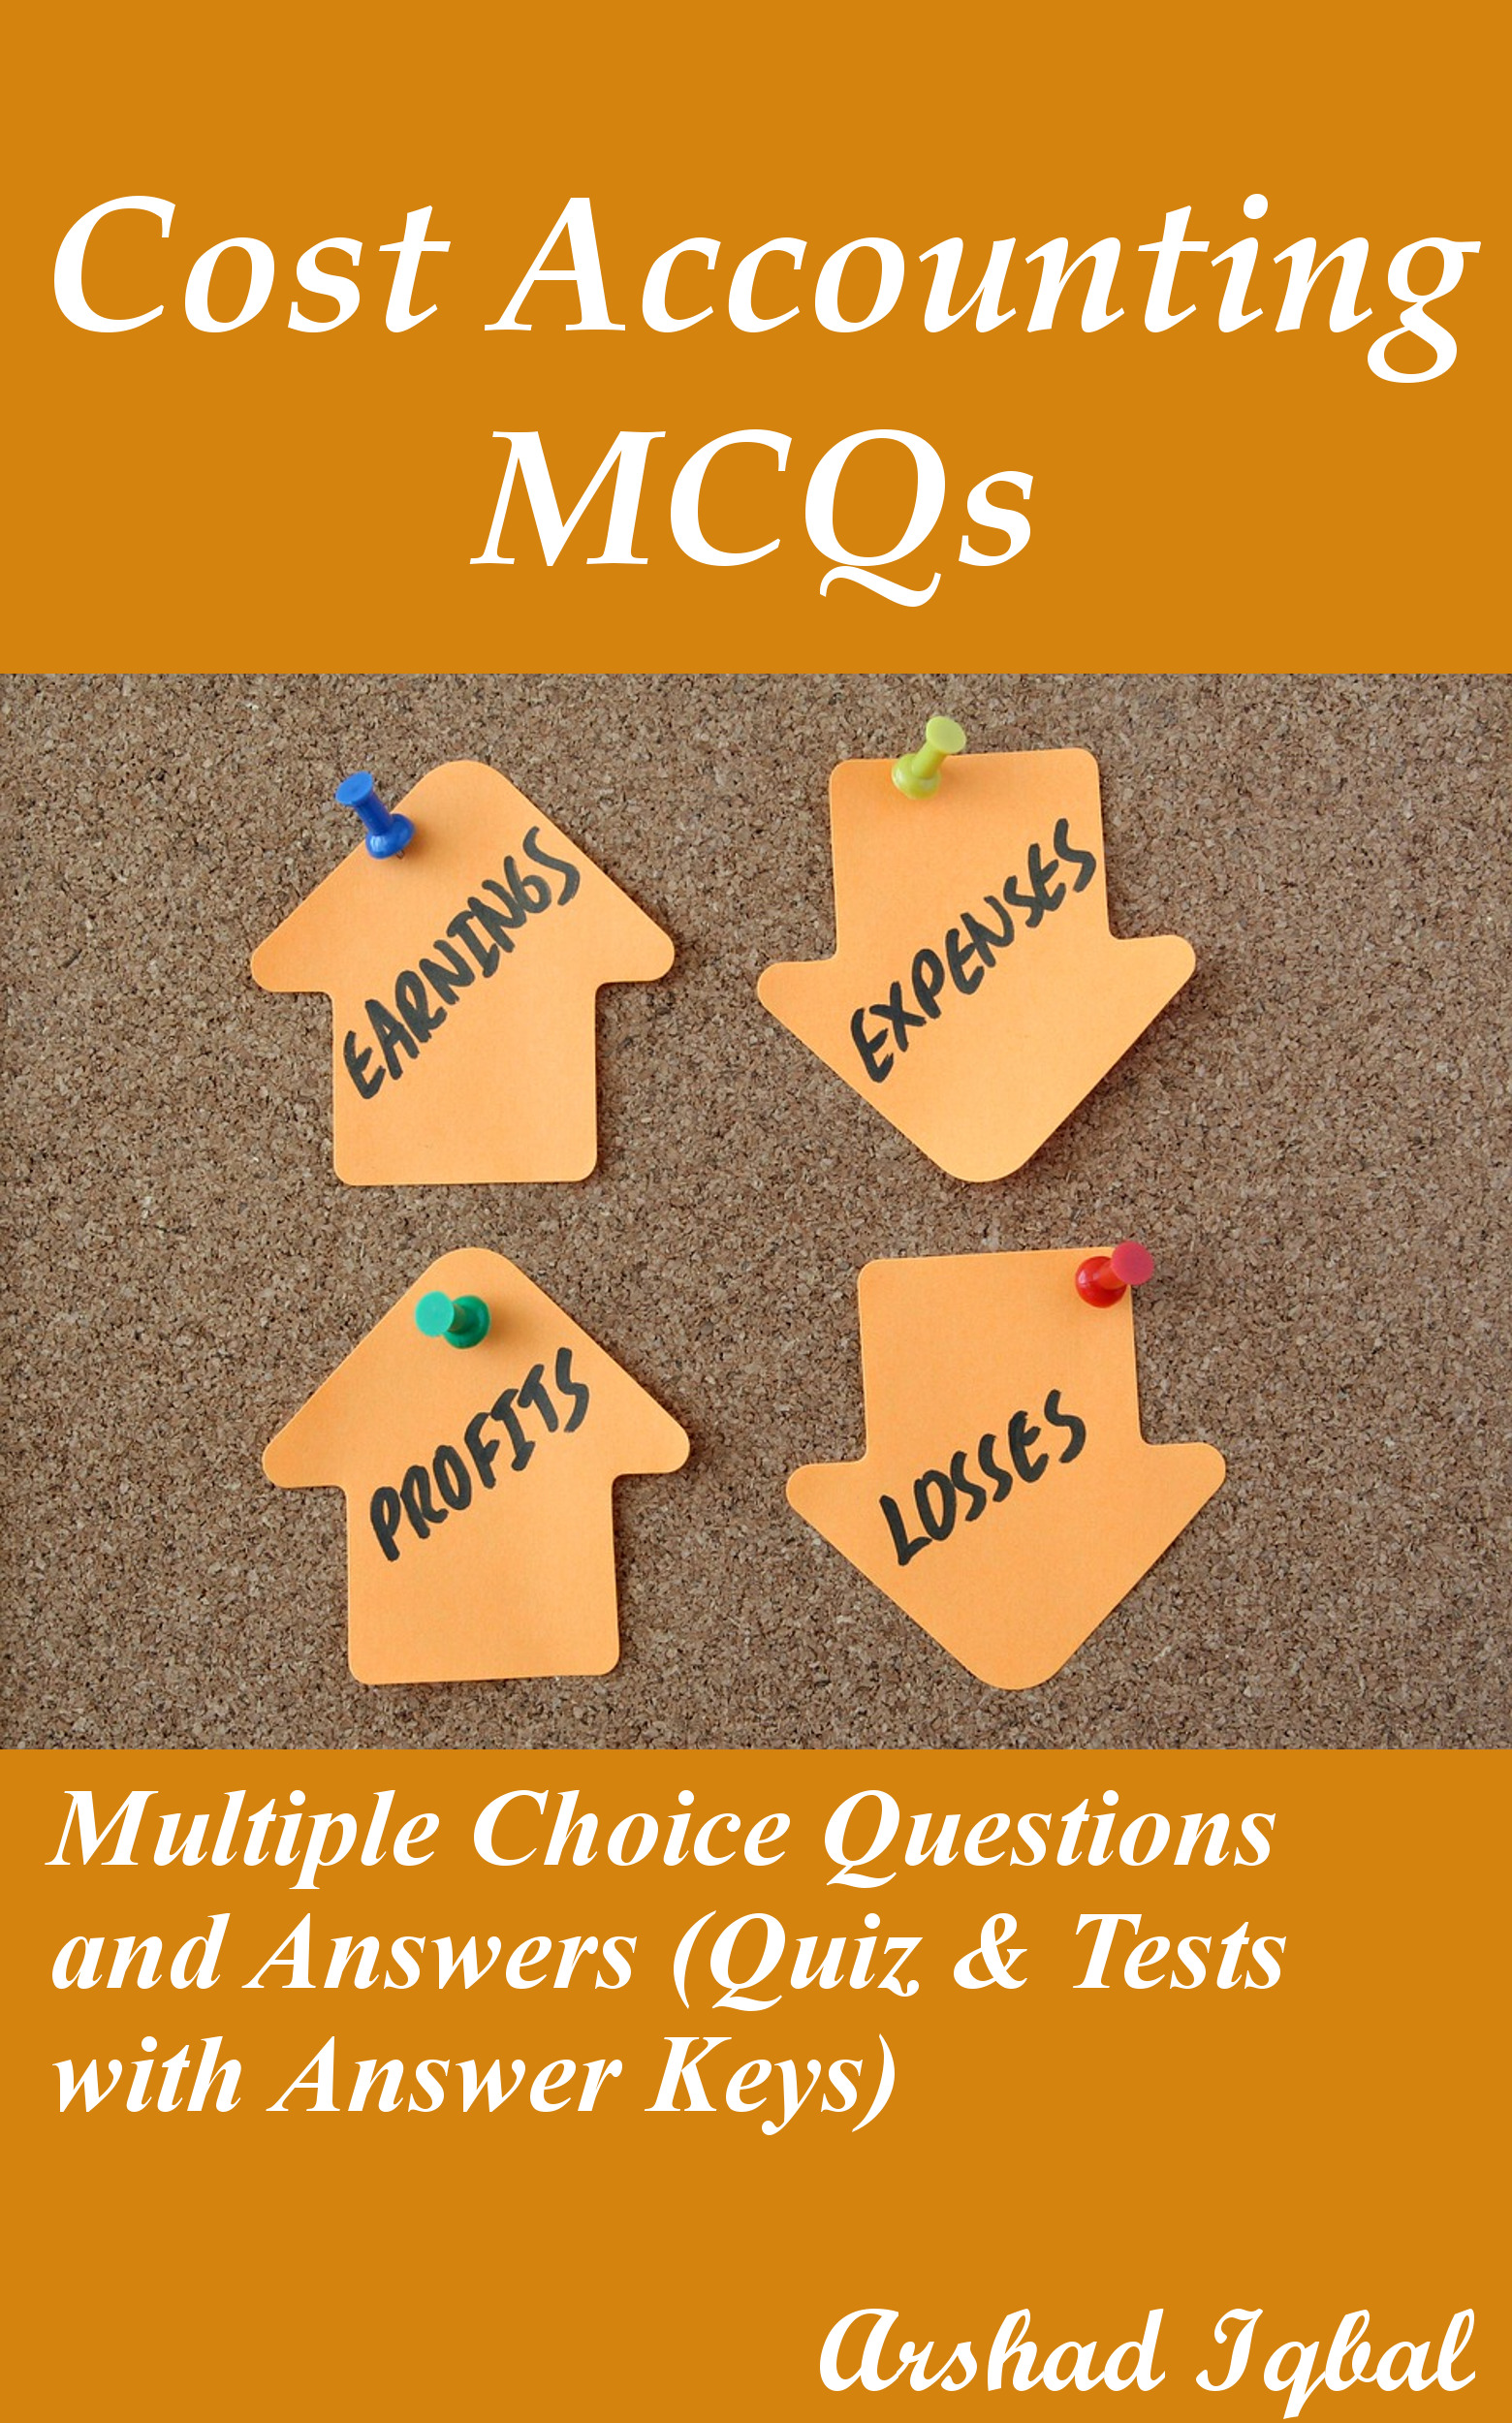 multiple choice questions decision making process information cost accounting mcqs multiple choice questions and answers quiz tests answer keys